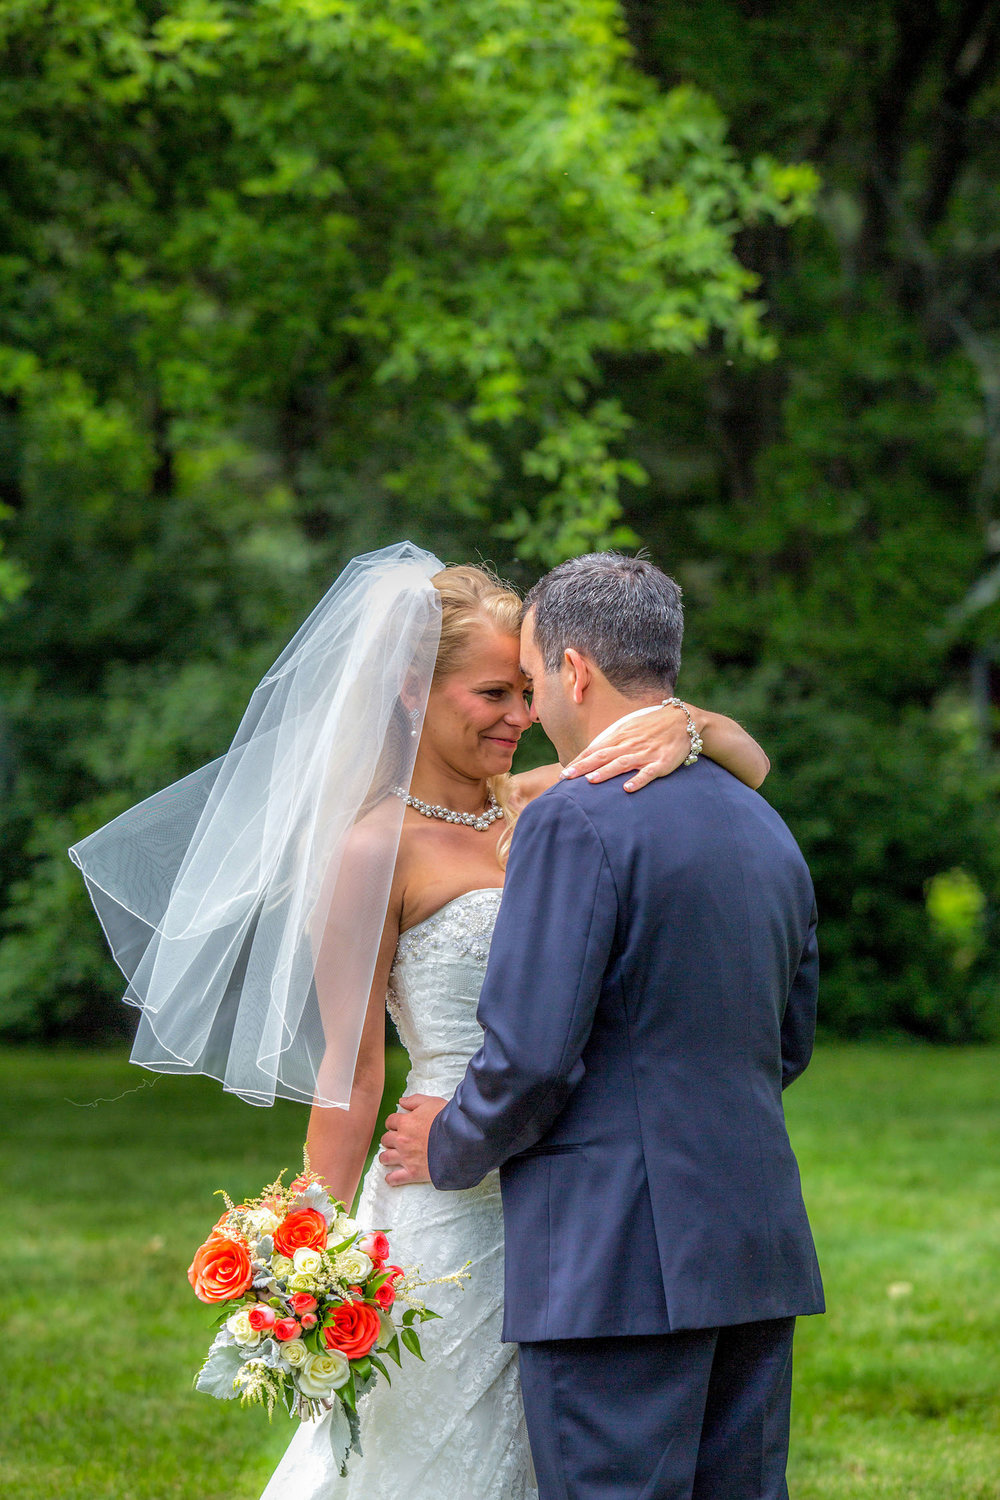 Cindyrellas Garden, outdoor lake ceremony in Minnesota,